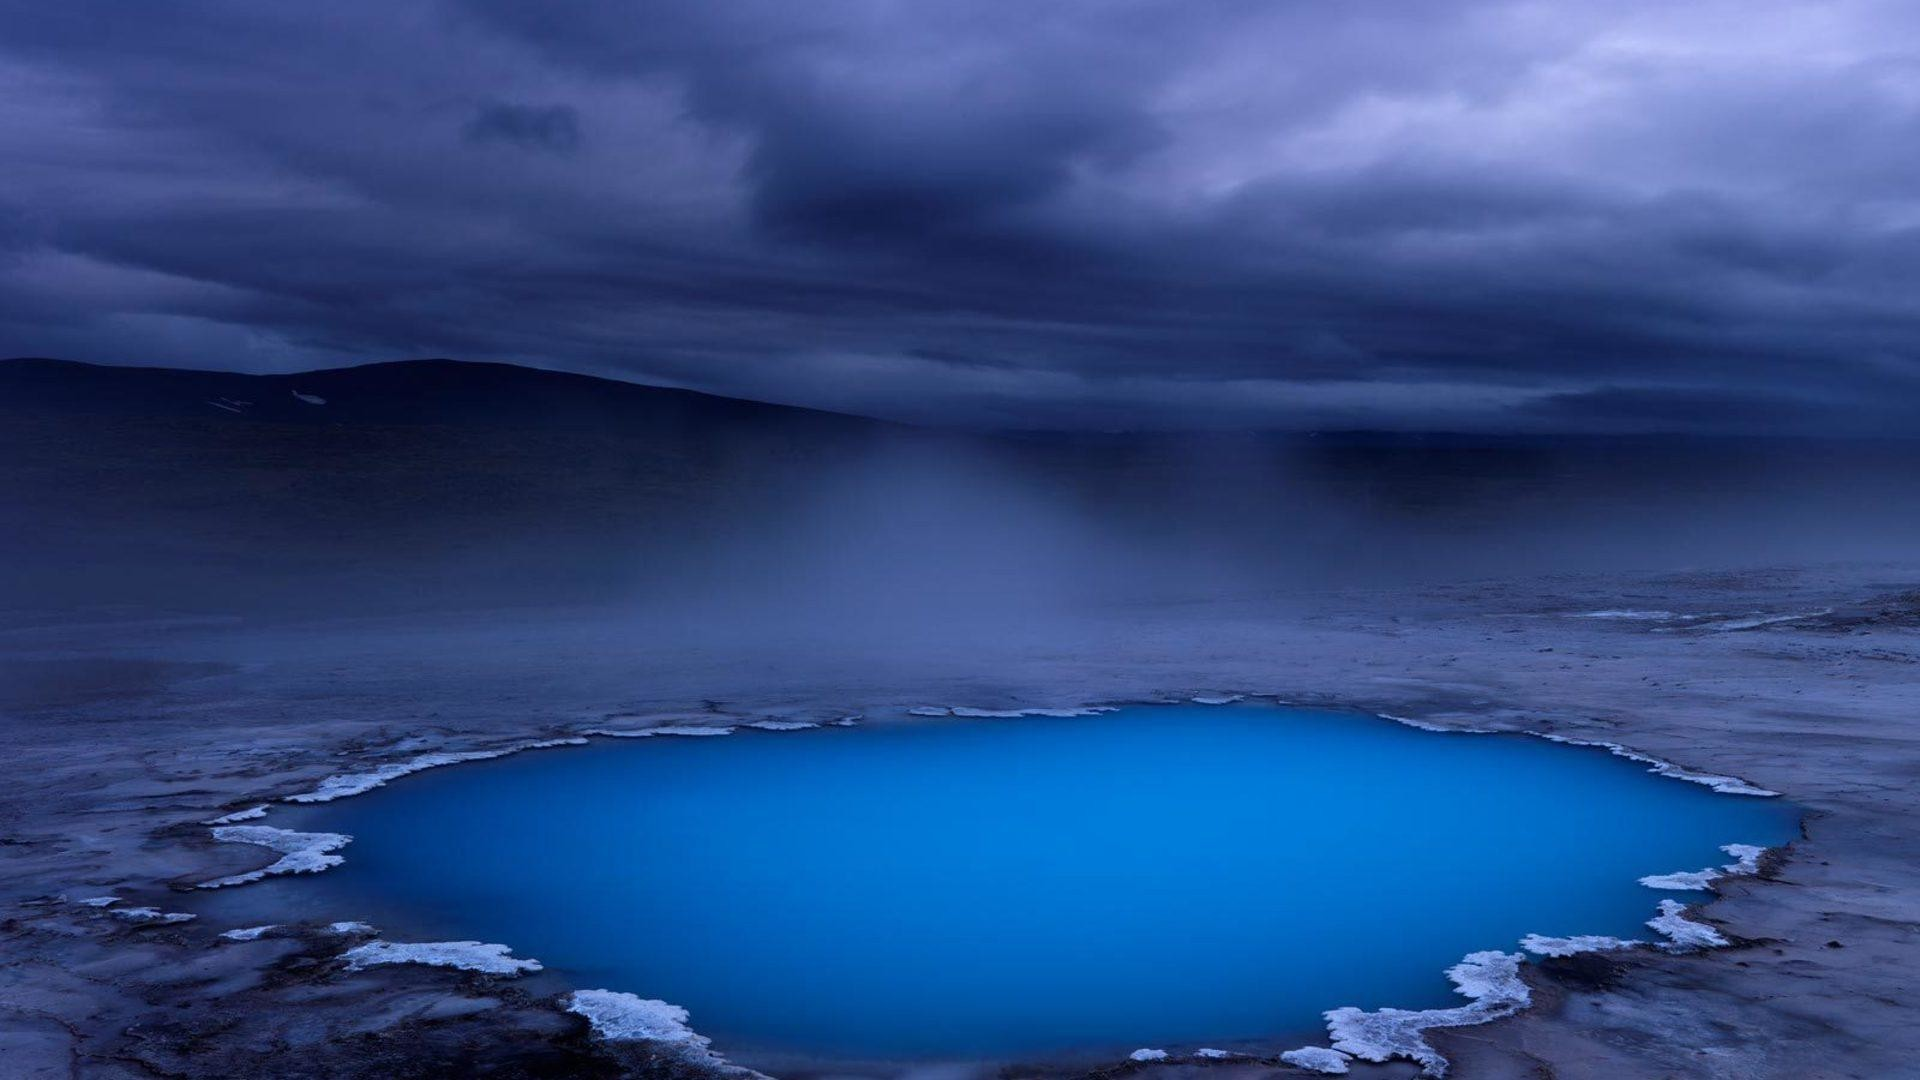 1920x1080 iceland wallpaper 87 images - Iceland iphone wallpaper ...